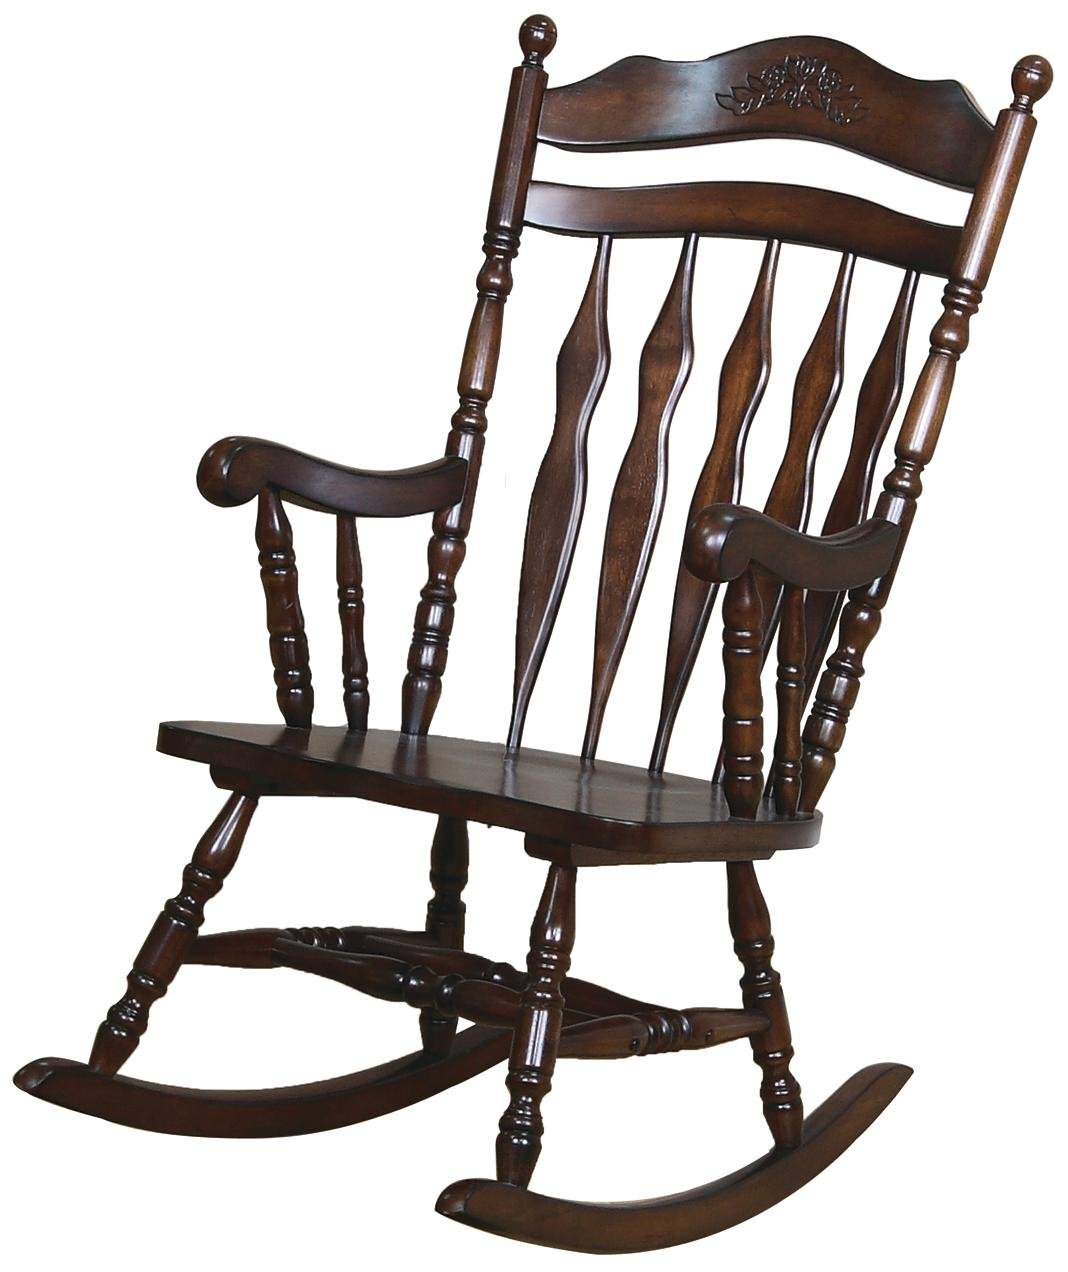 Coaster Home Furnishings  Traditional Nostalgia Arrowback Turned Leg Rocking Chair with Hand Carved Details - Walnut by Coaster Home Furnishings